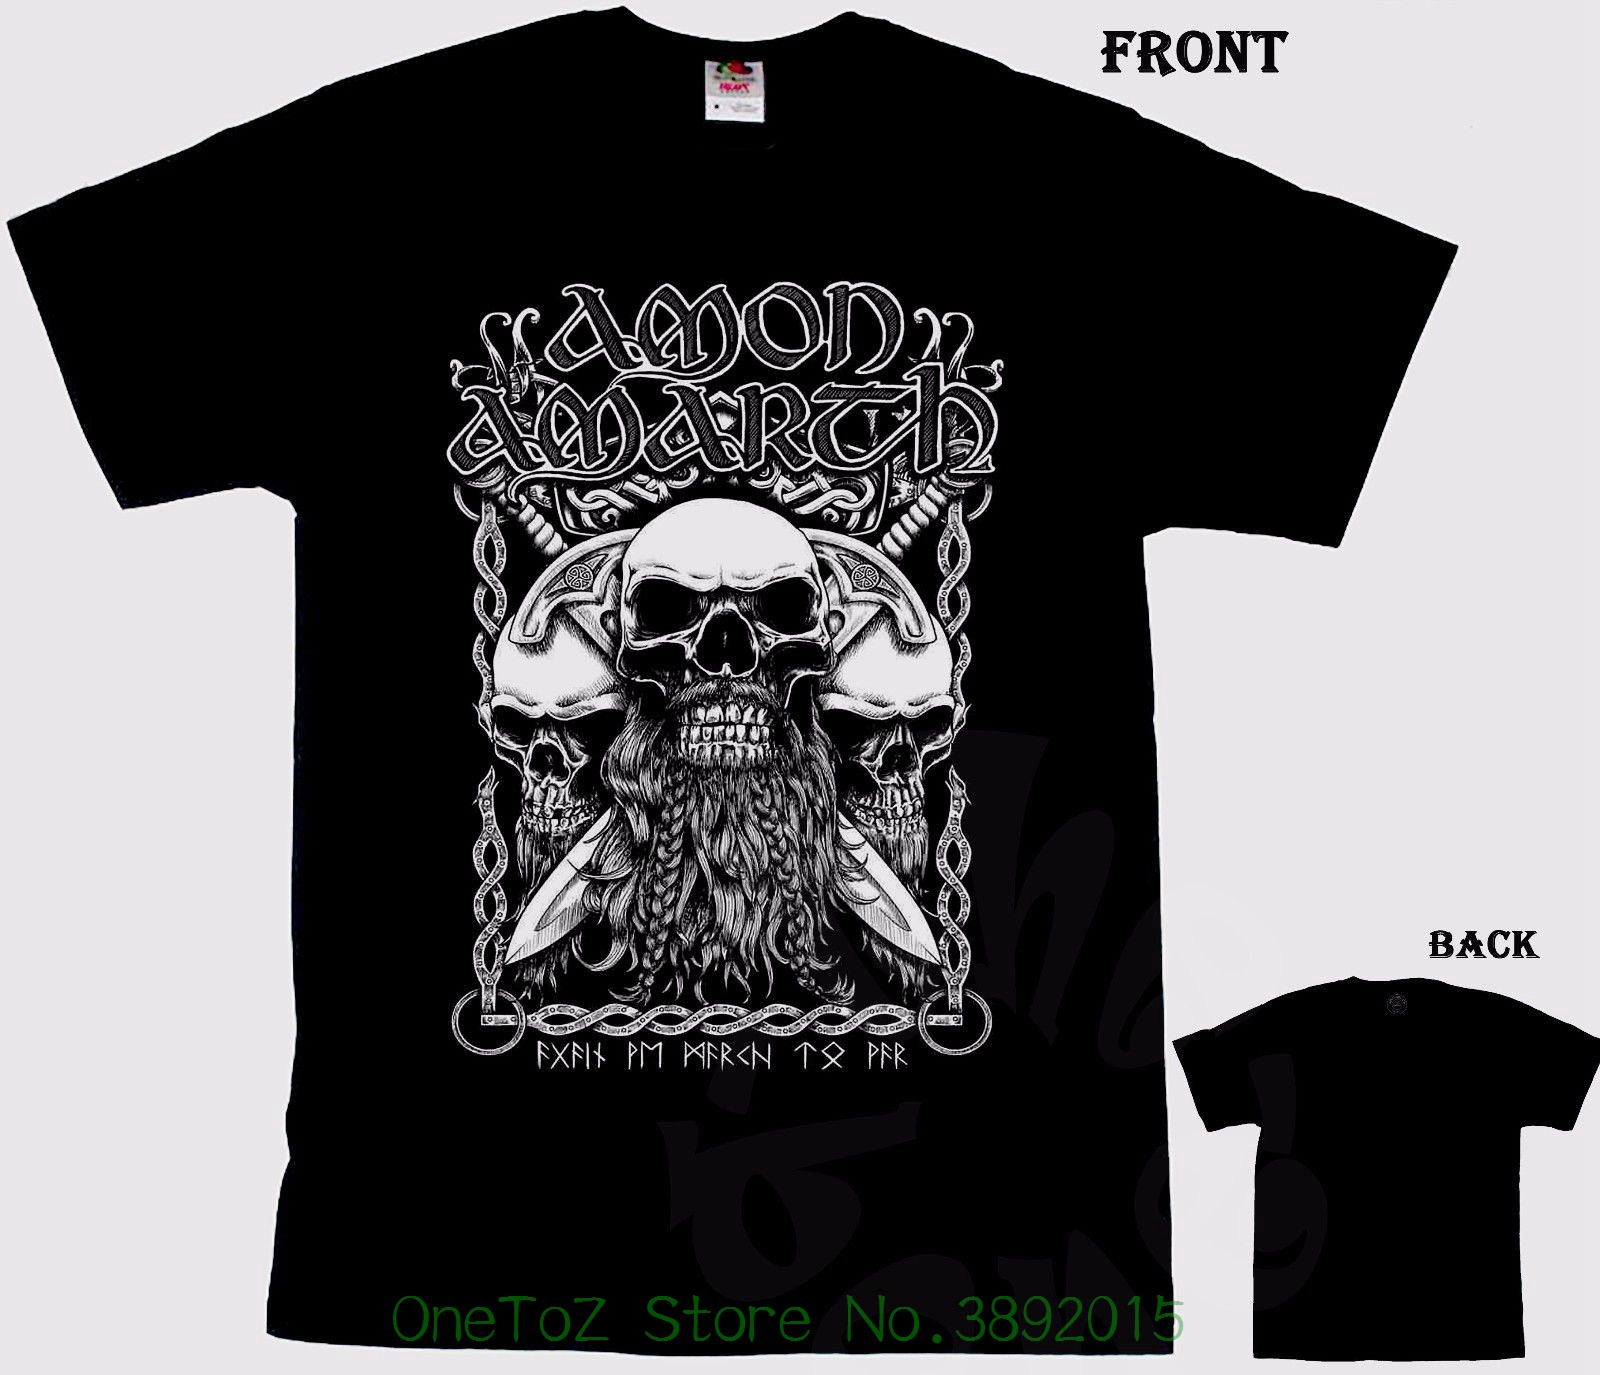 2018 Summer T-shirts For Men Amon Amarth - Melodic Viking Death Metal Band , T-shirt - S ...